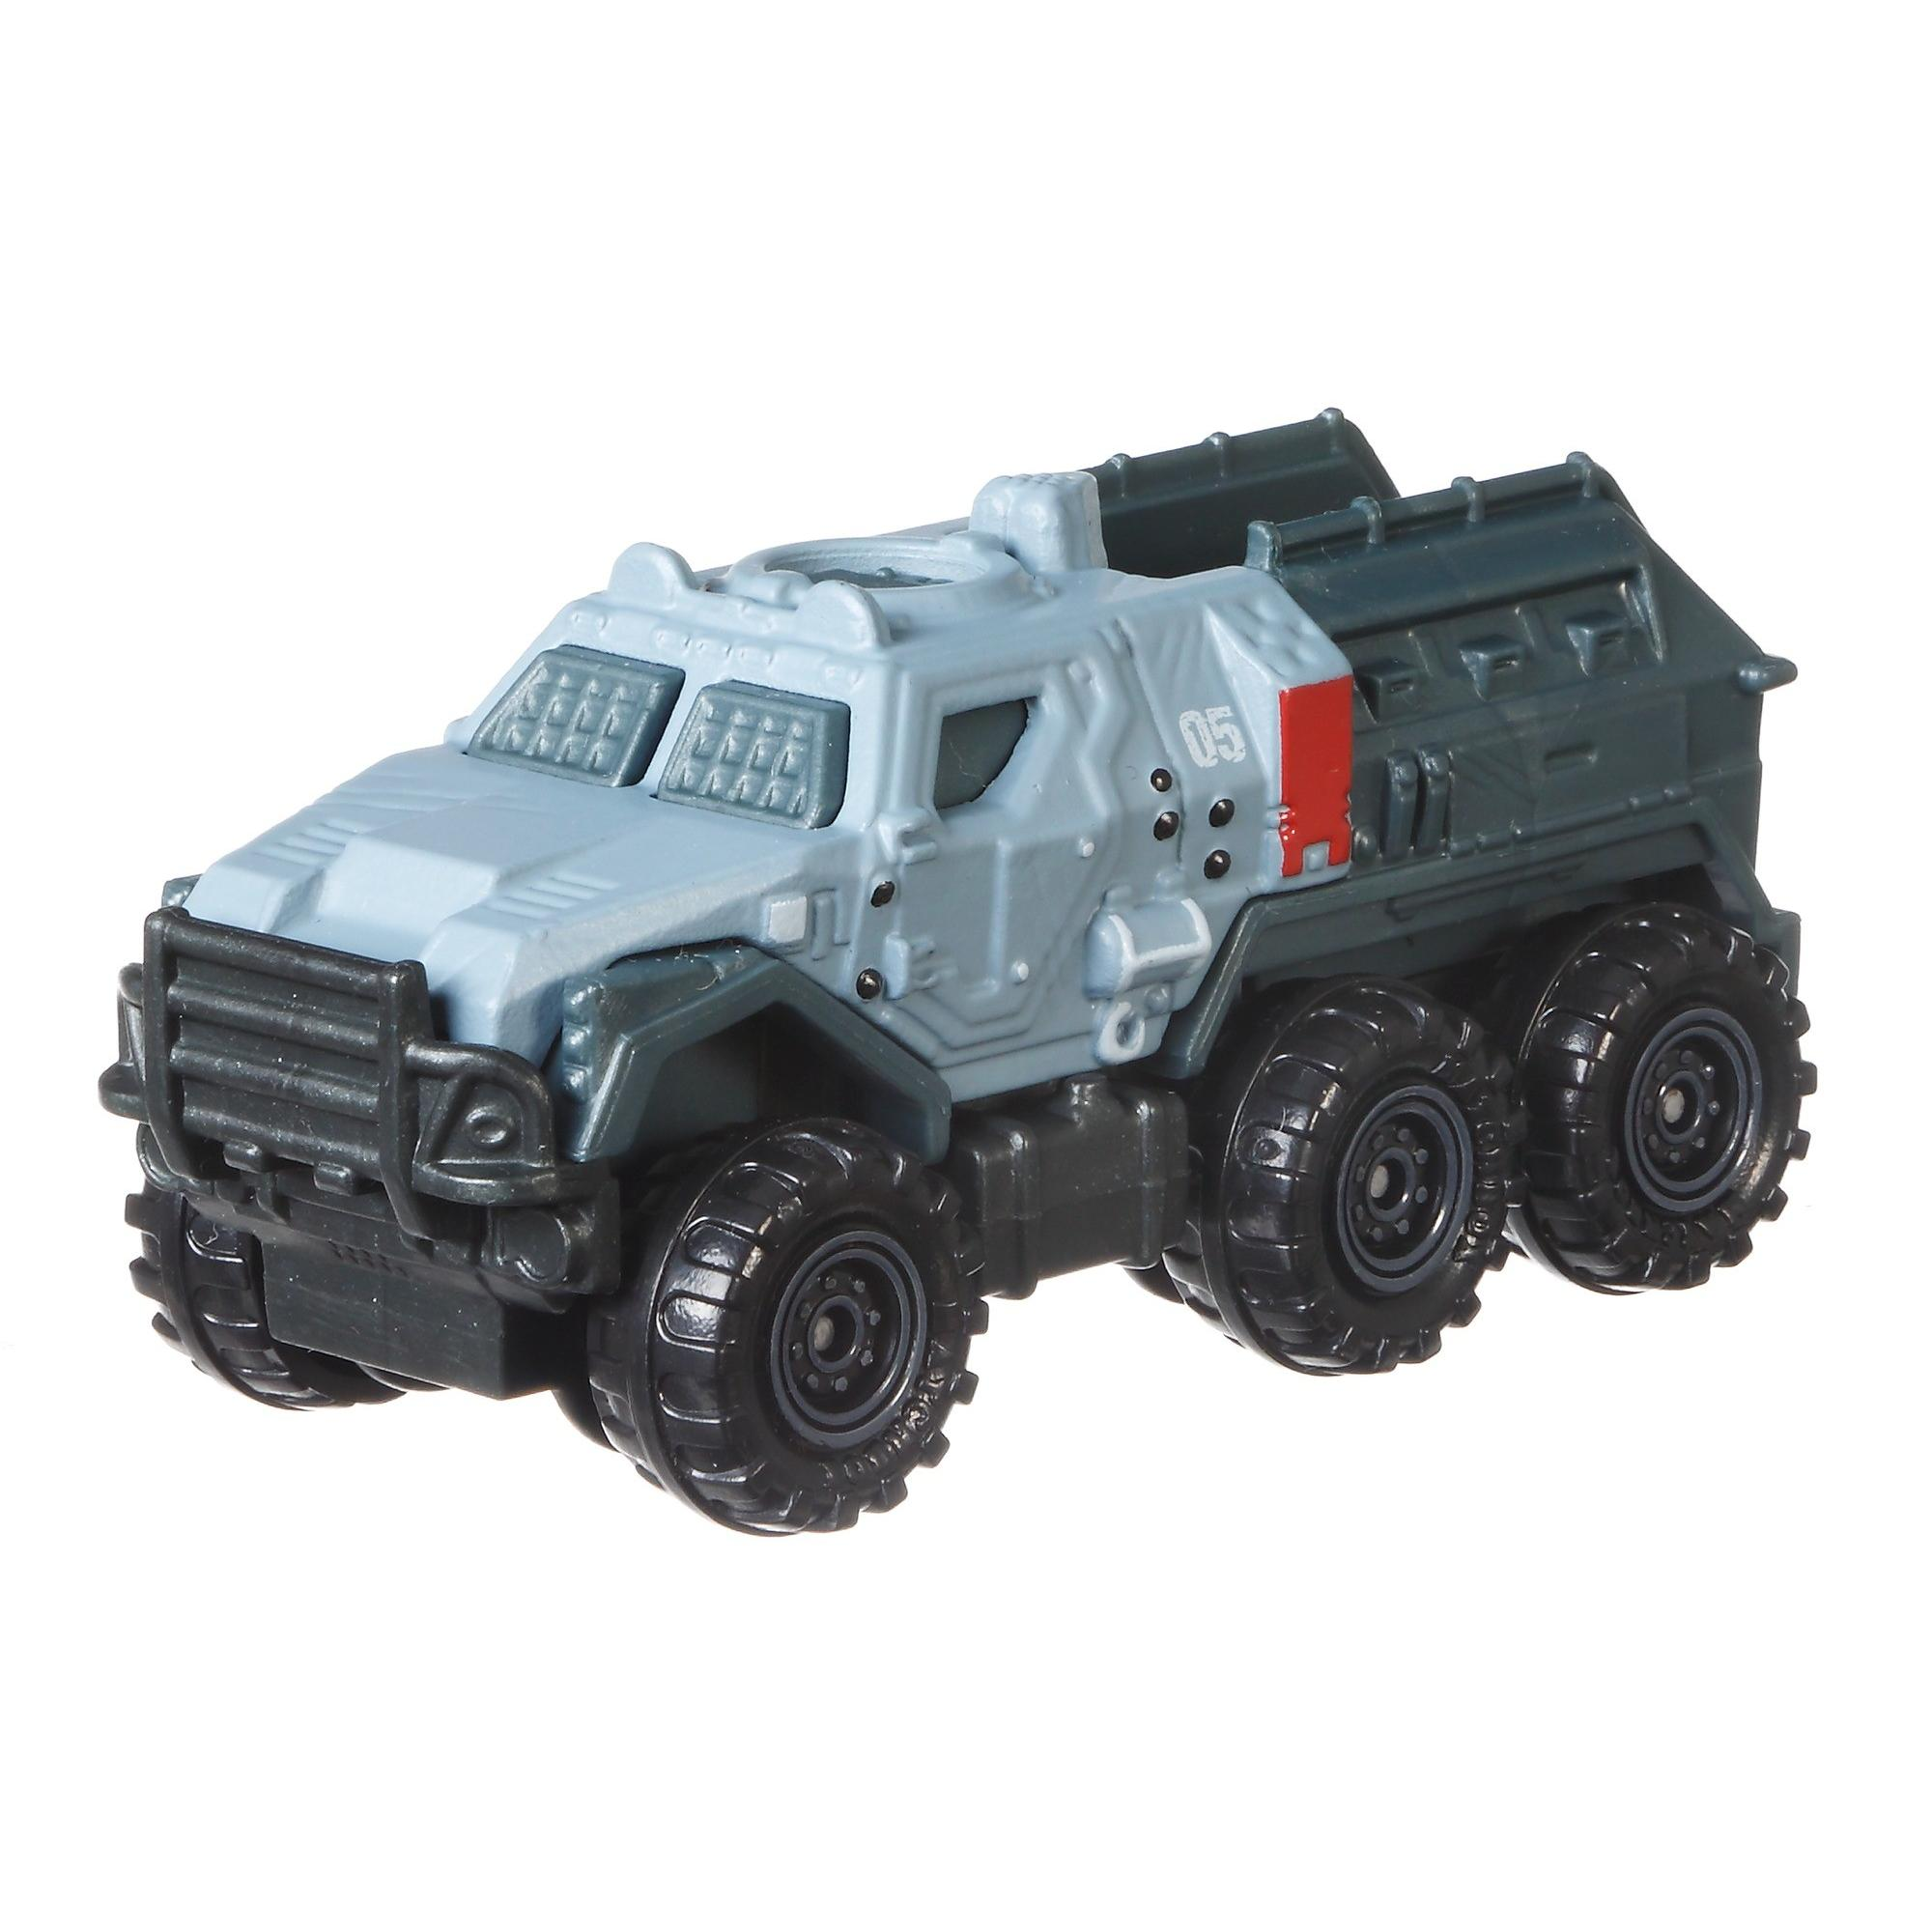 Matchbox Jurassic World Die-cast Vehicle (Styles May Vary)